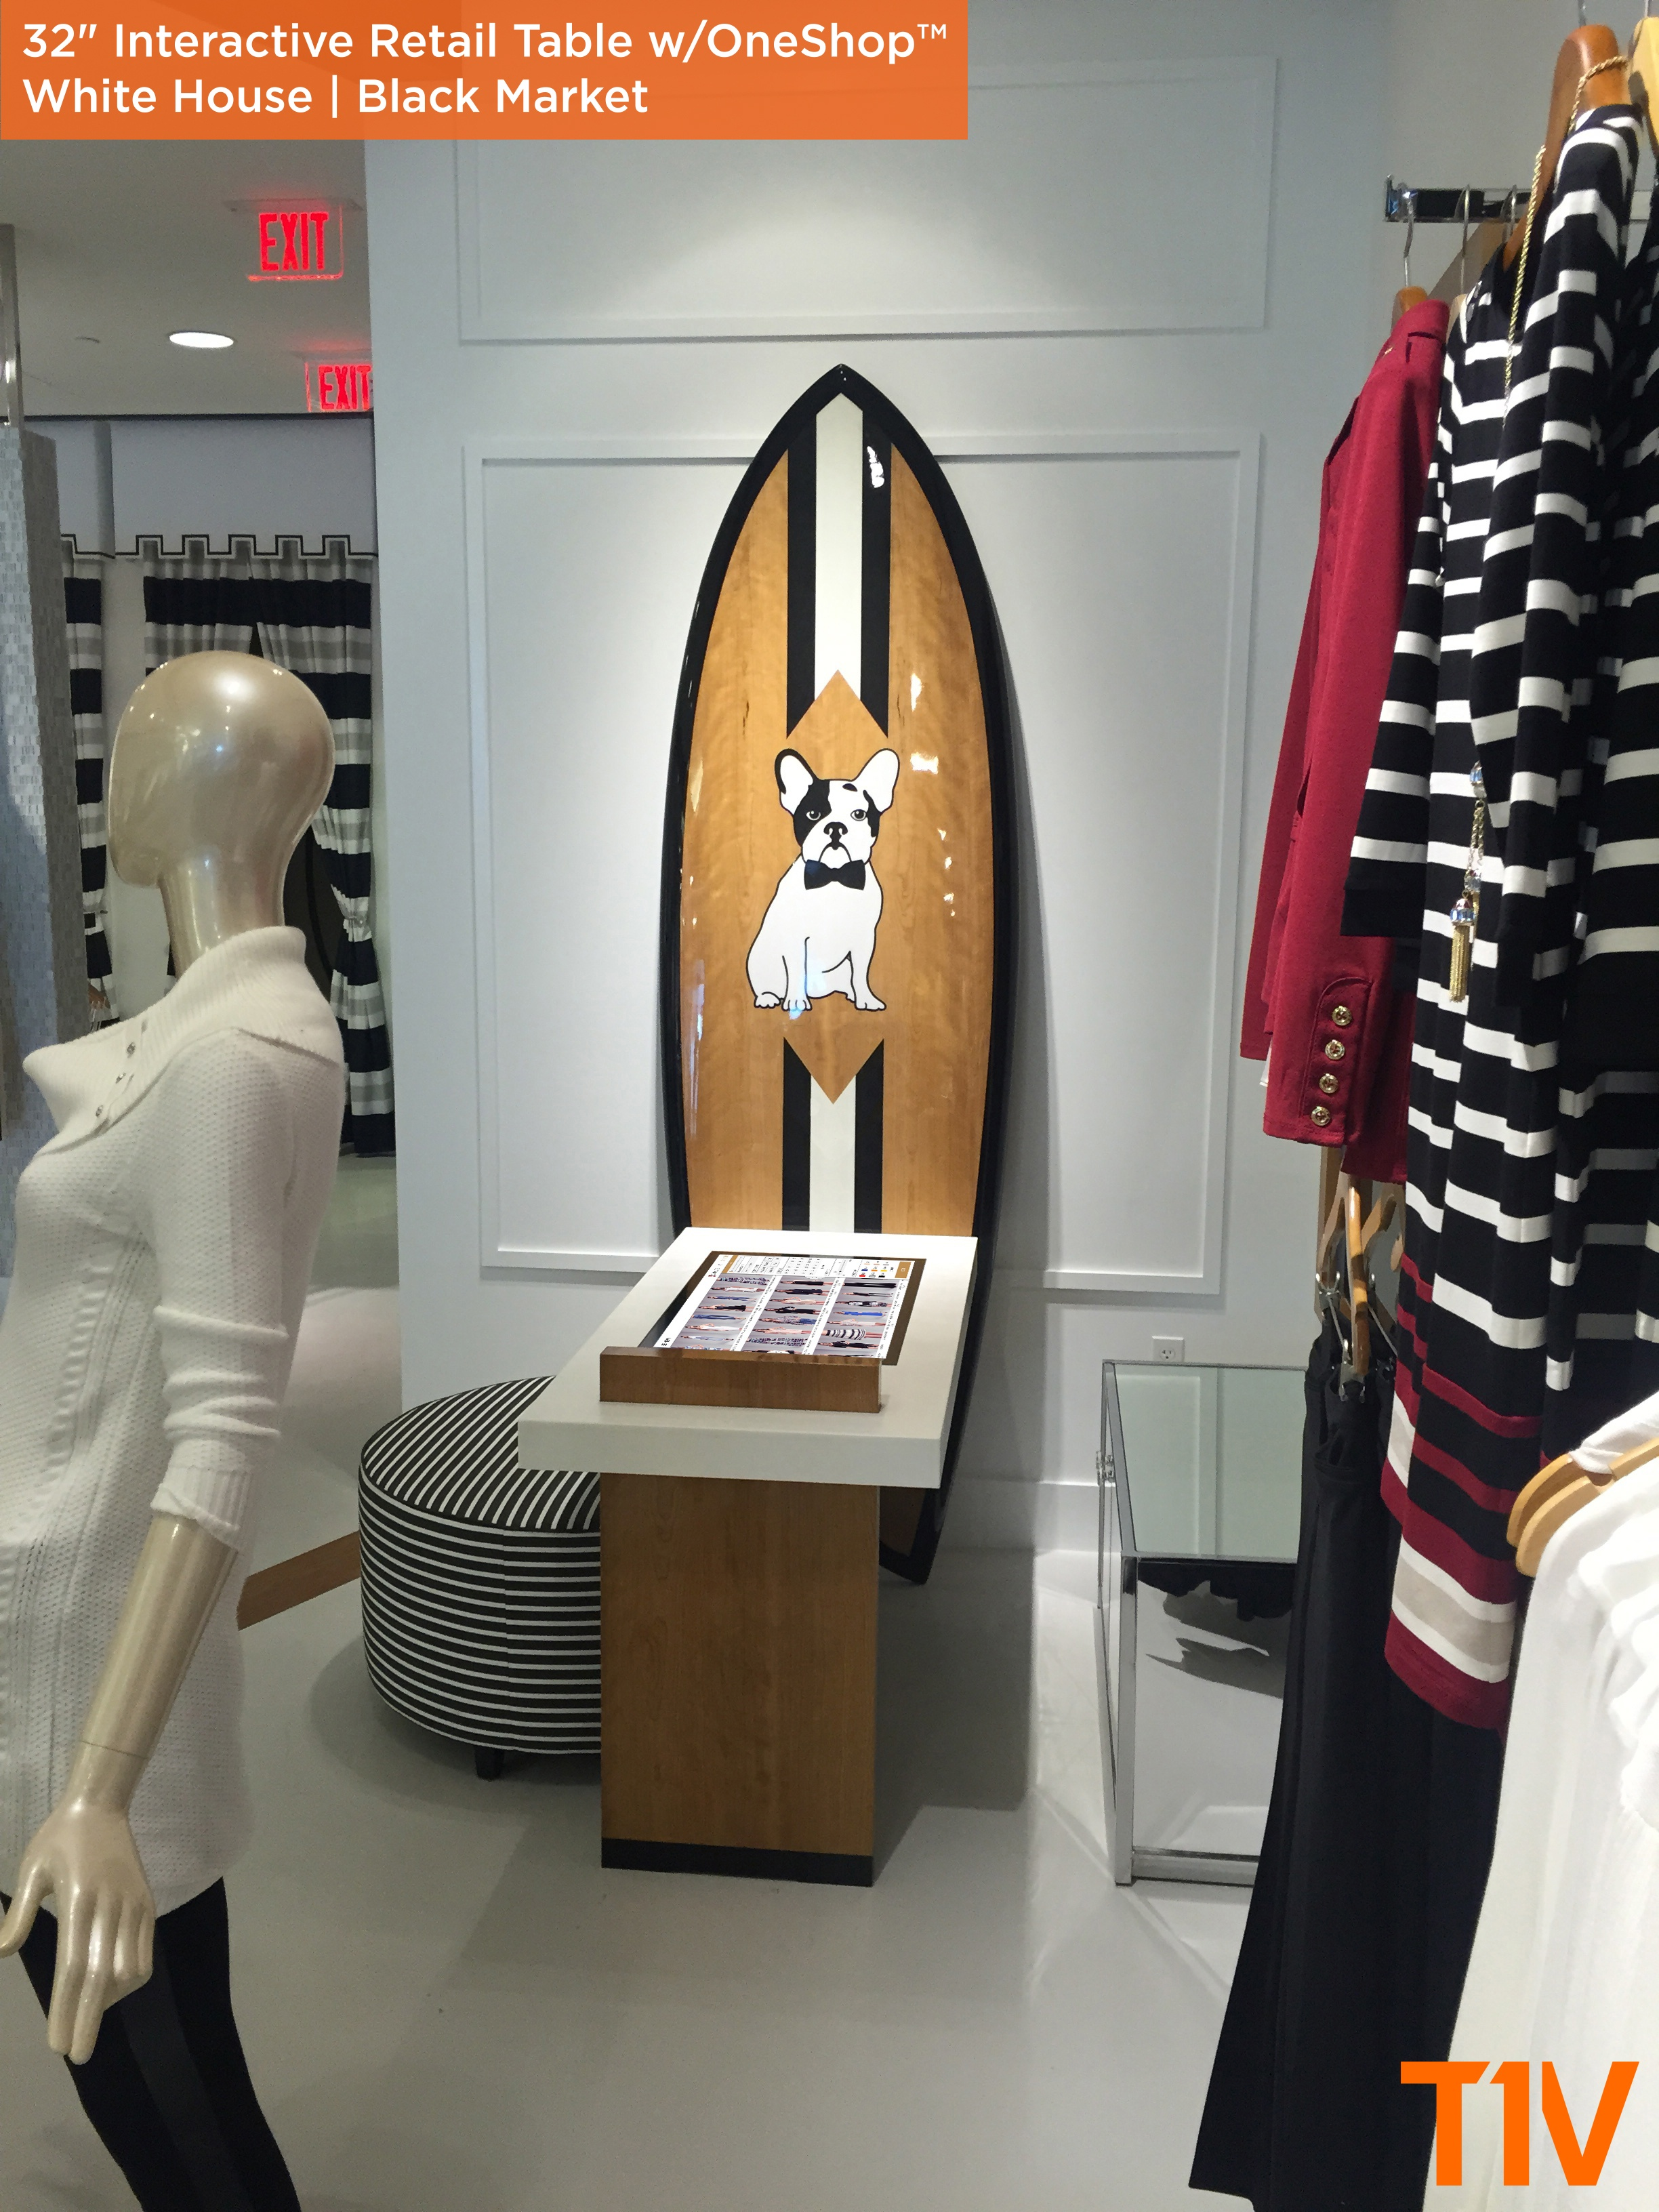 T1V_Surfboard_Interactive_Table_inStore_w_OneShop.jpg